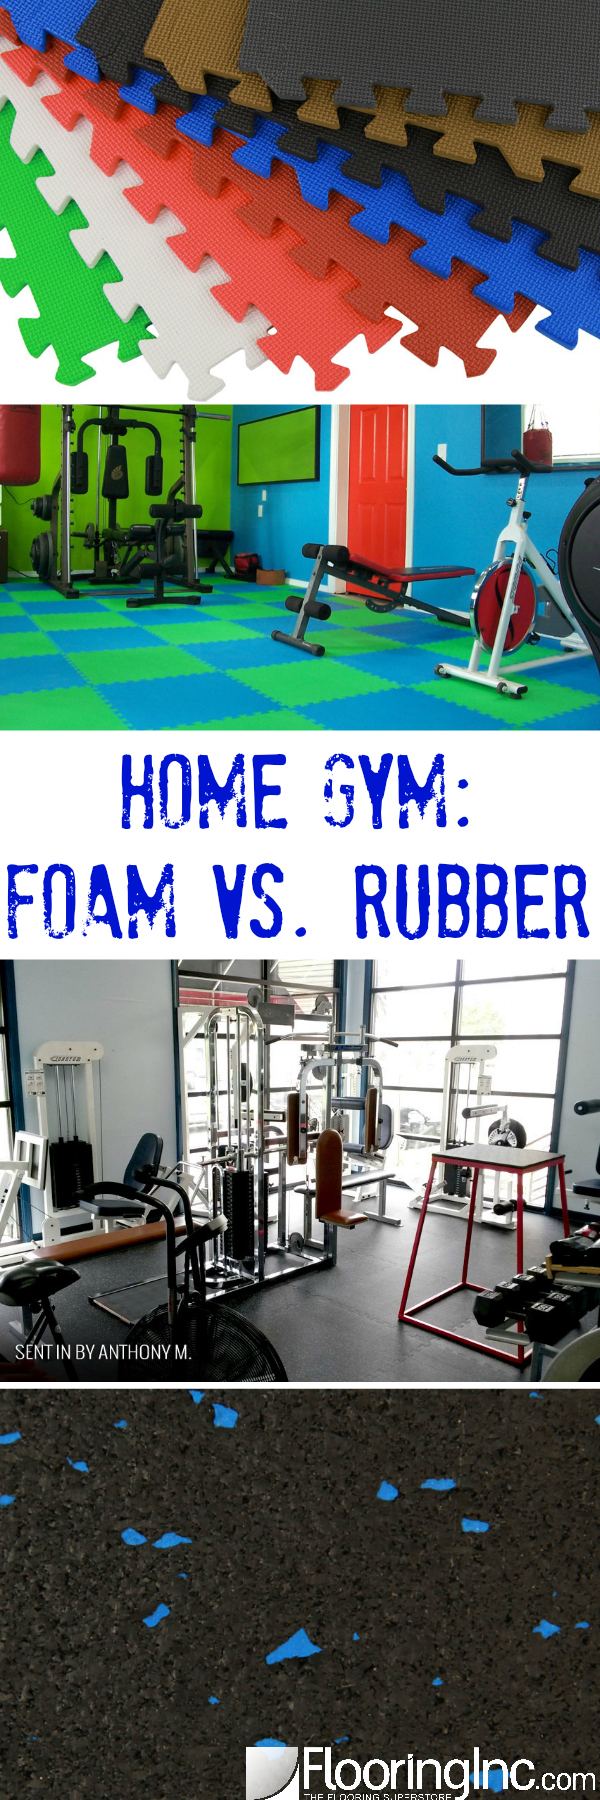 Home gym foam vs rubber flooringinc